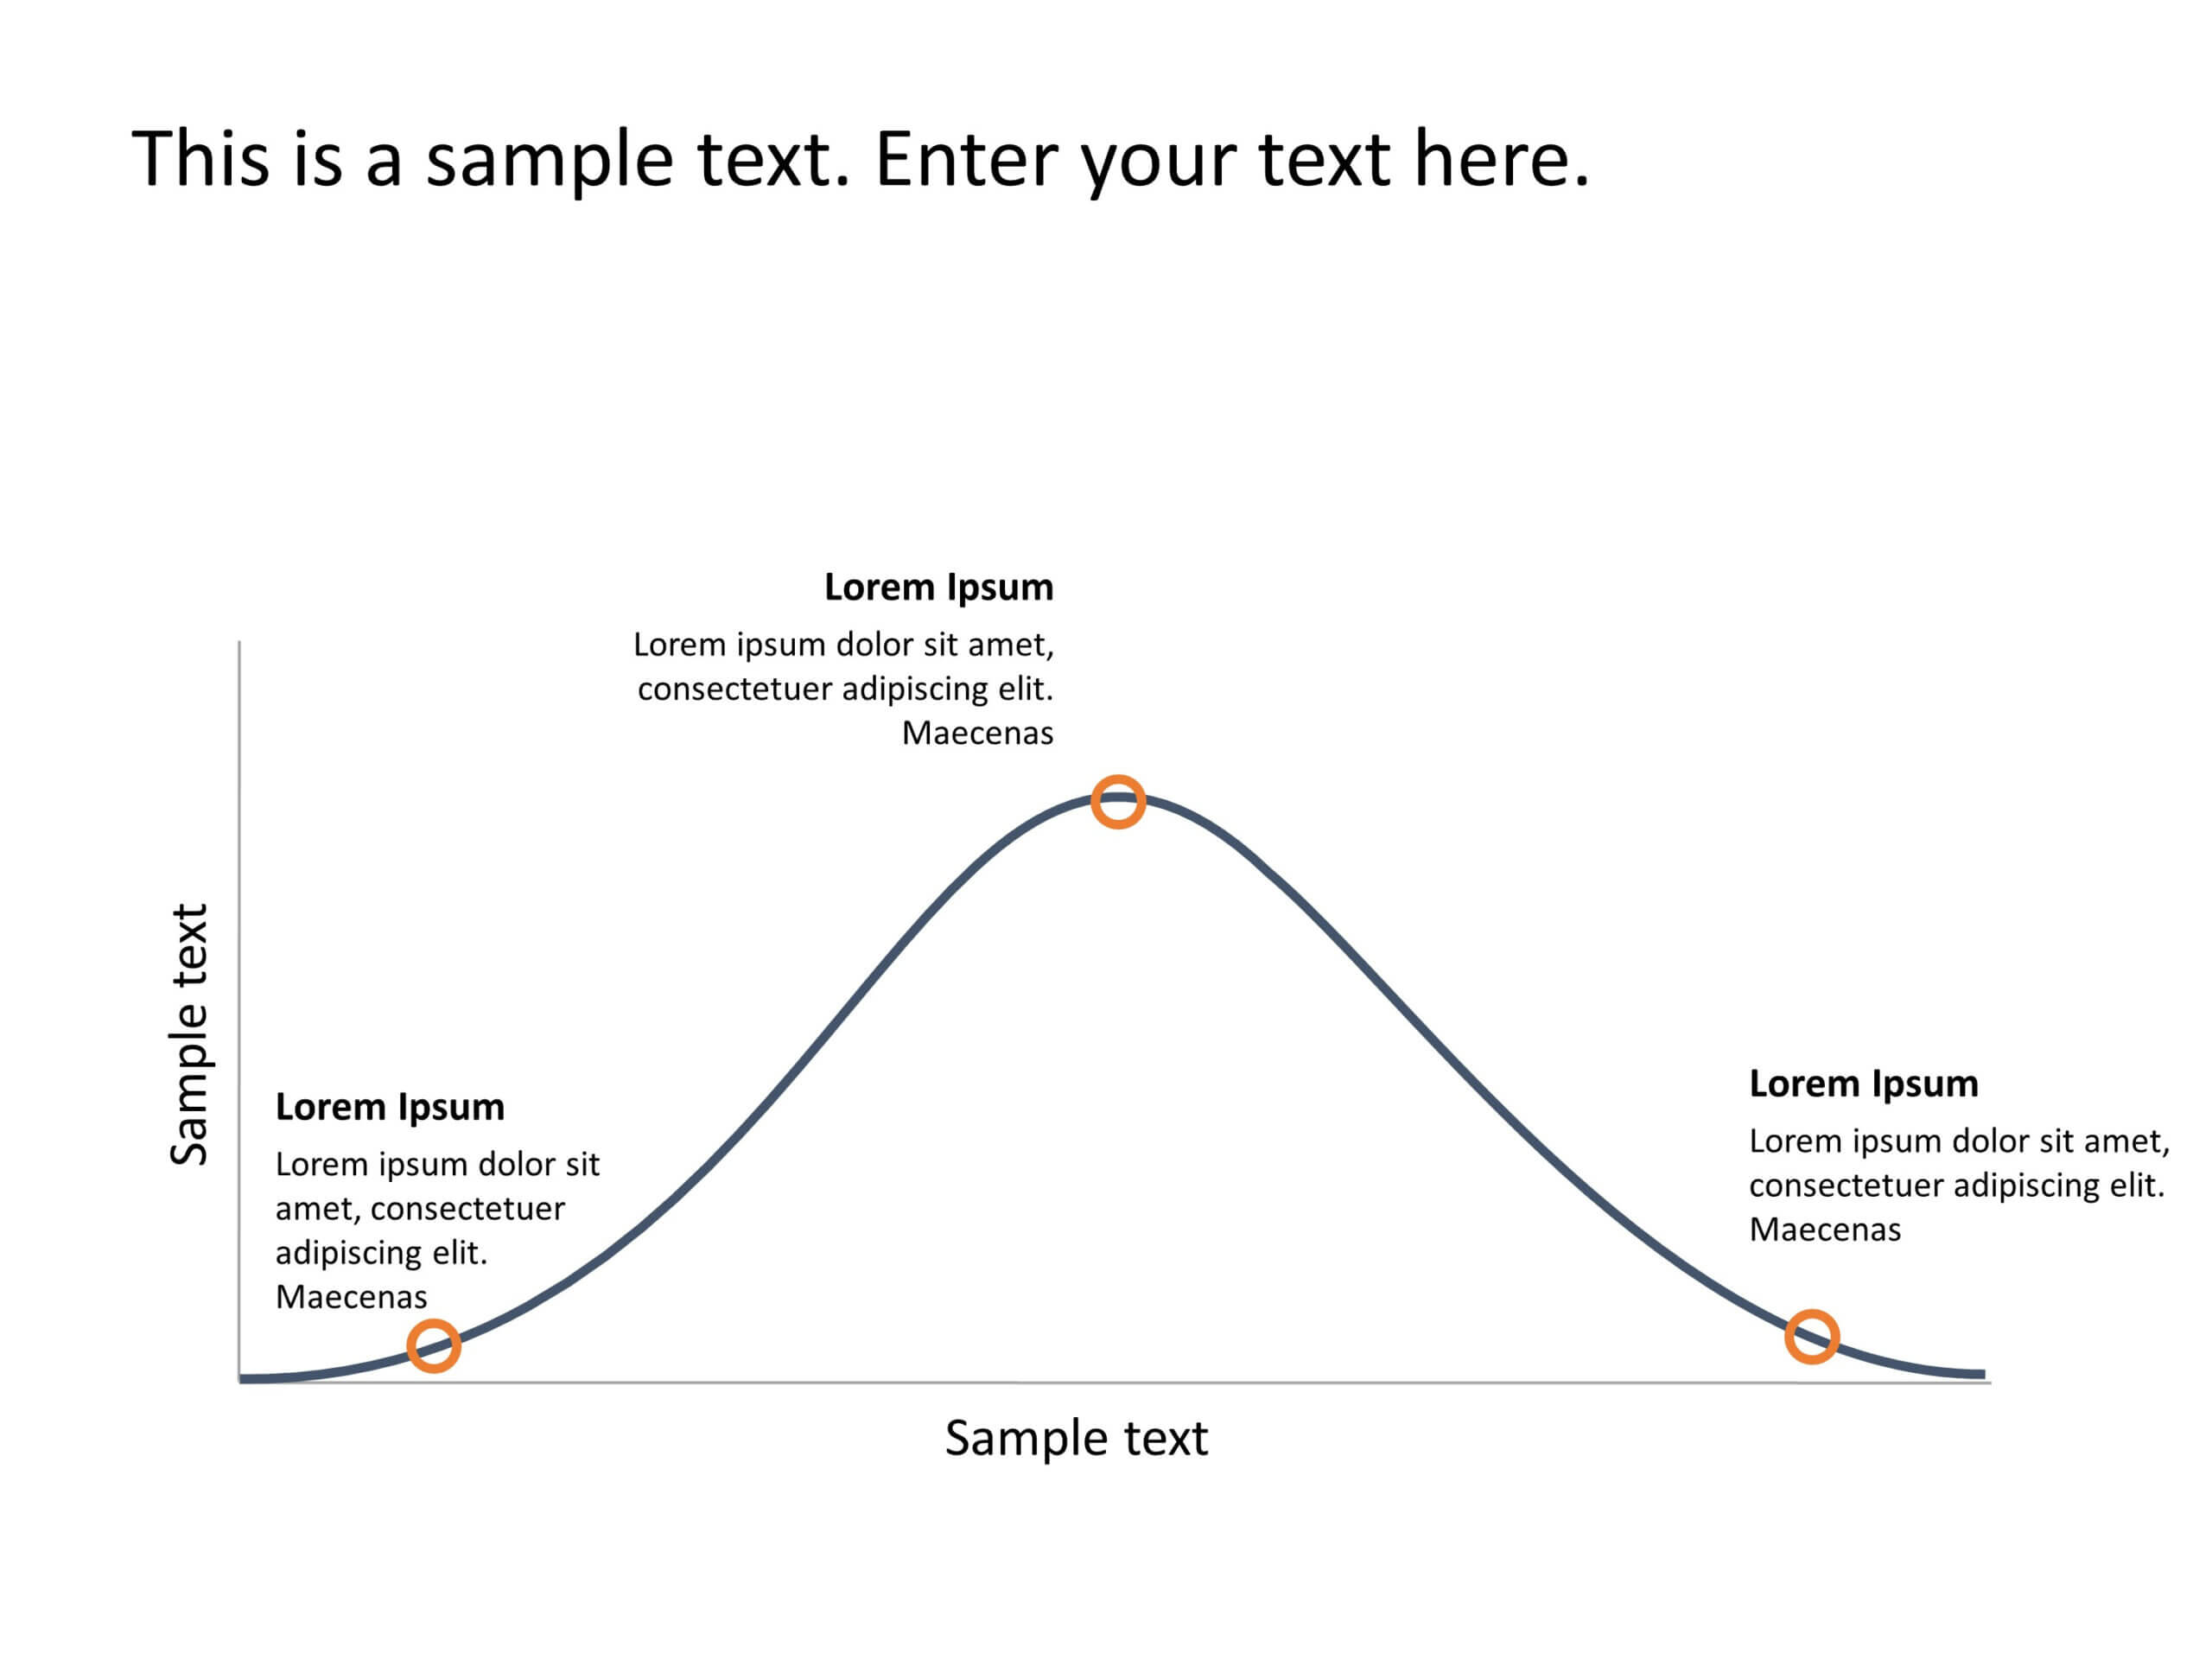 Bell Curve Powerpoint Template   Bell Curve Powerpoint Throughout Powerpoint Bell Curve Template